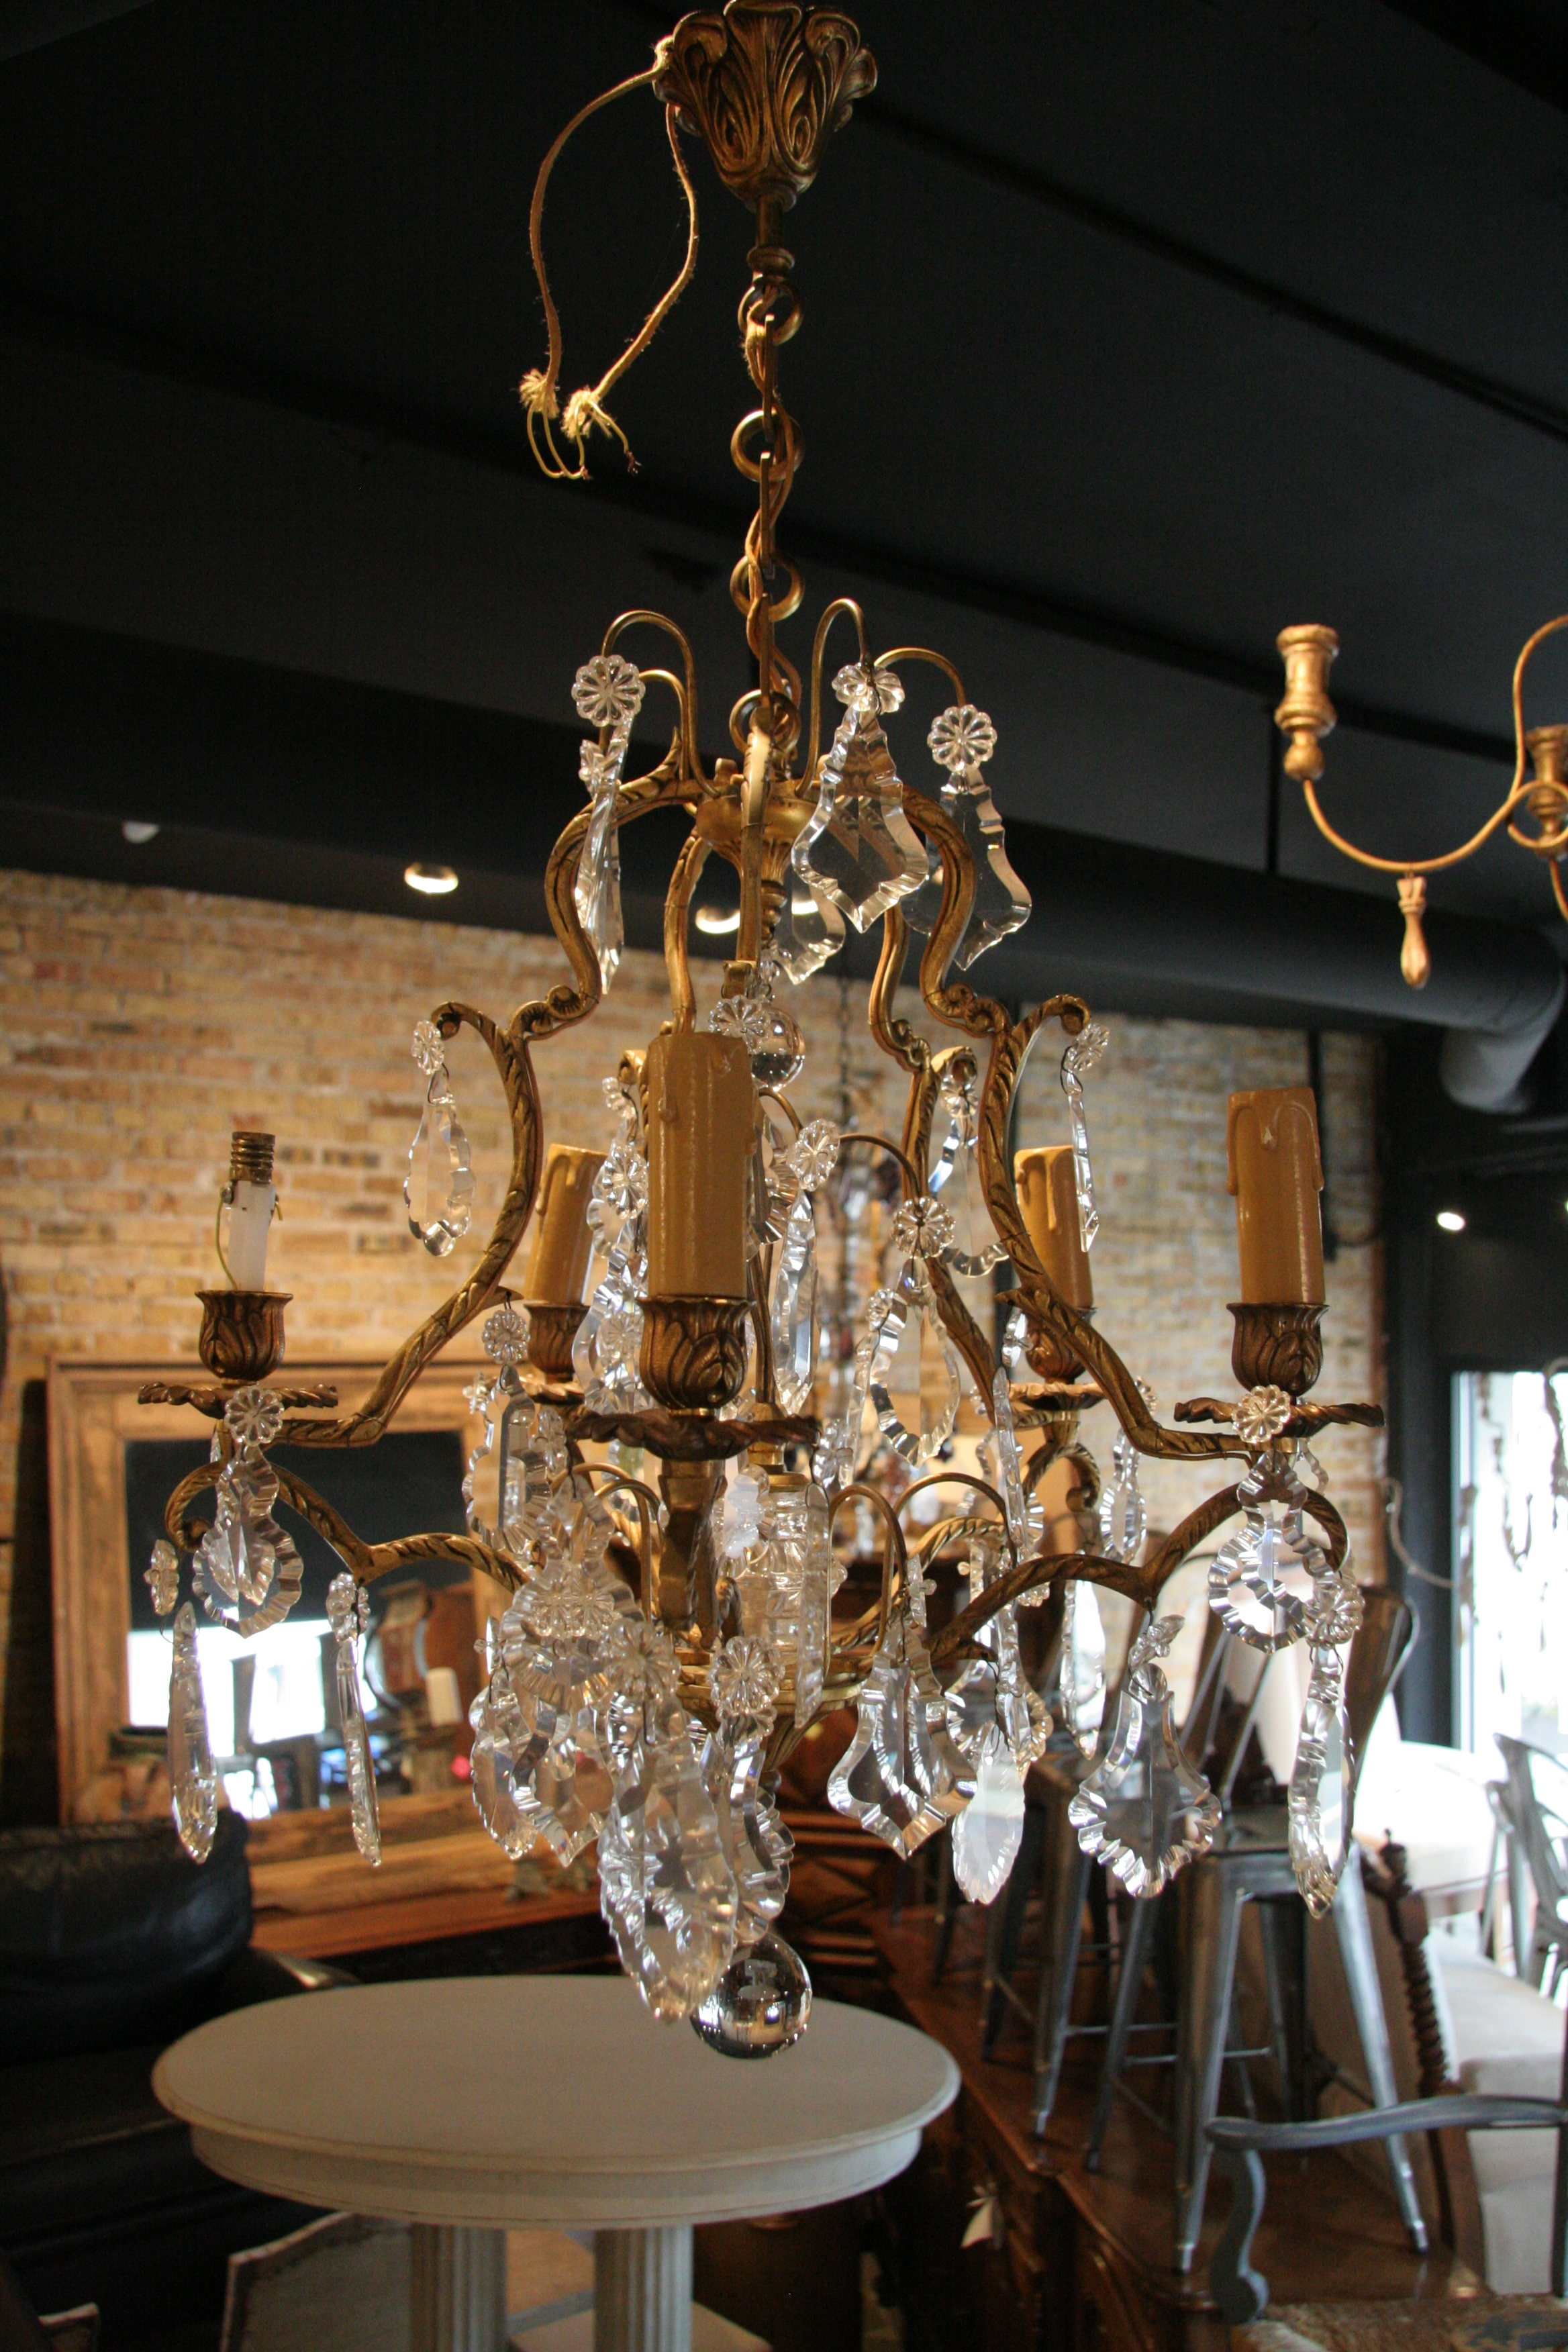 Antique French 5 Light Brass And Crystal Chandelier Inside Brass And Crystal Chandelier (Image 4 of 15)